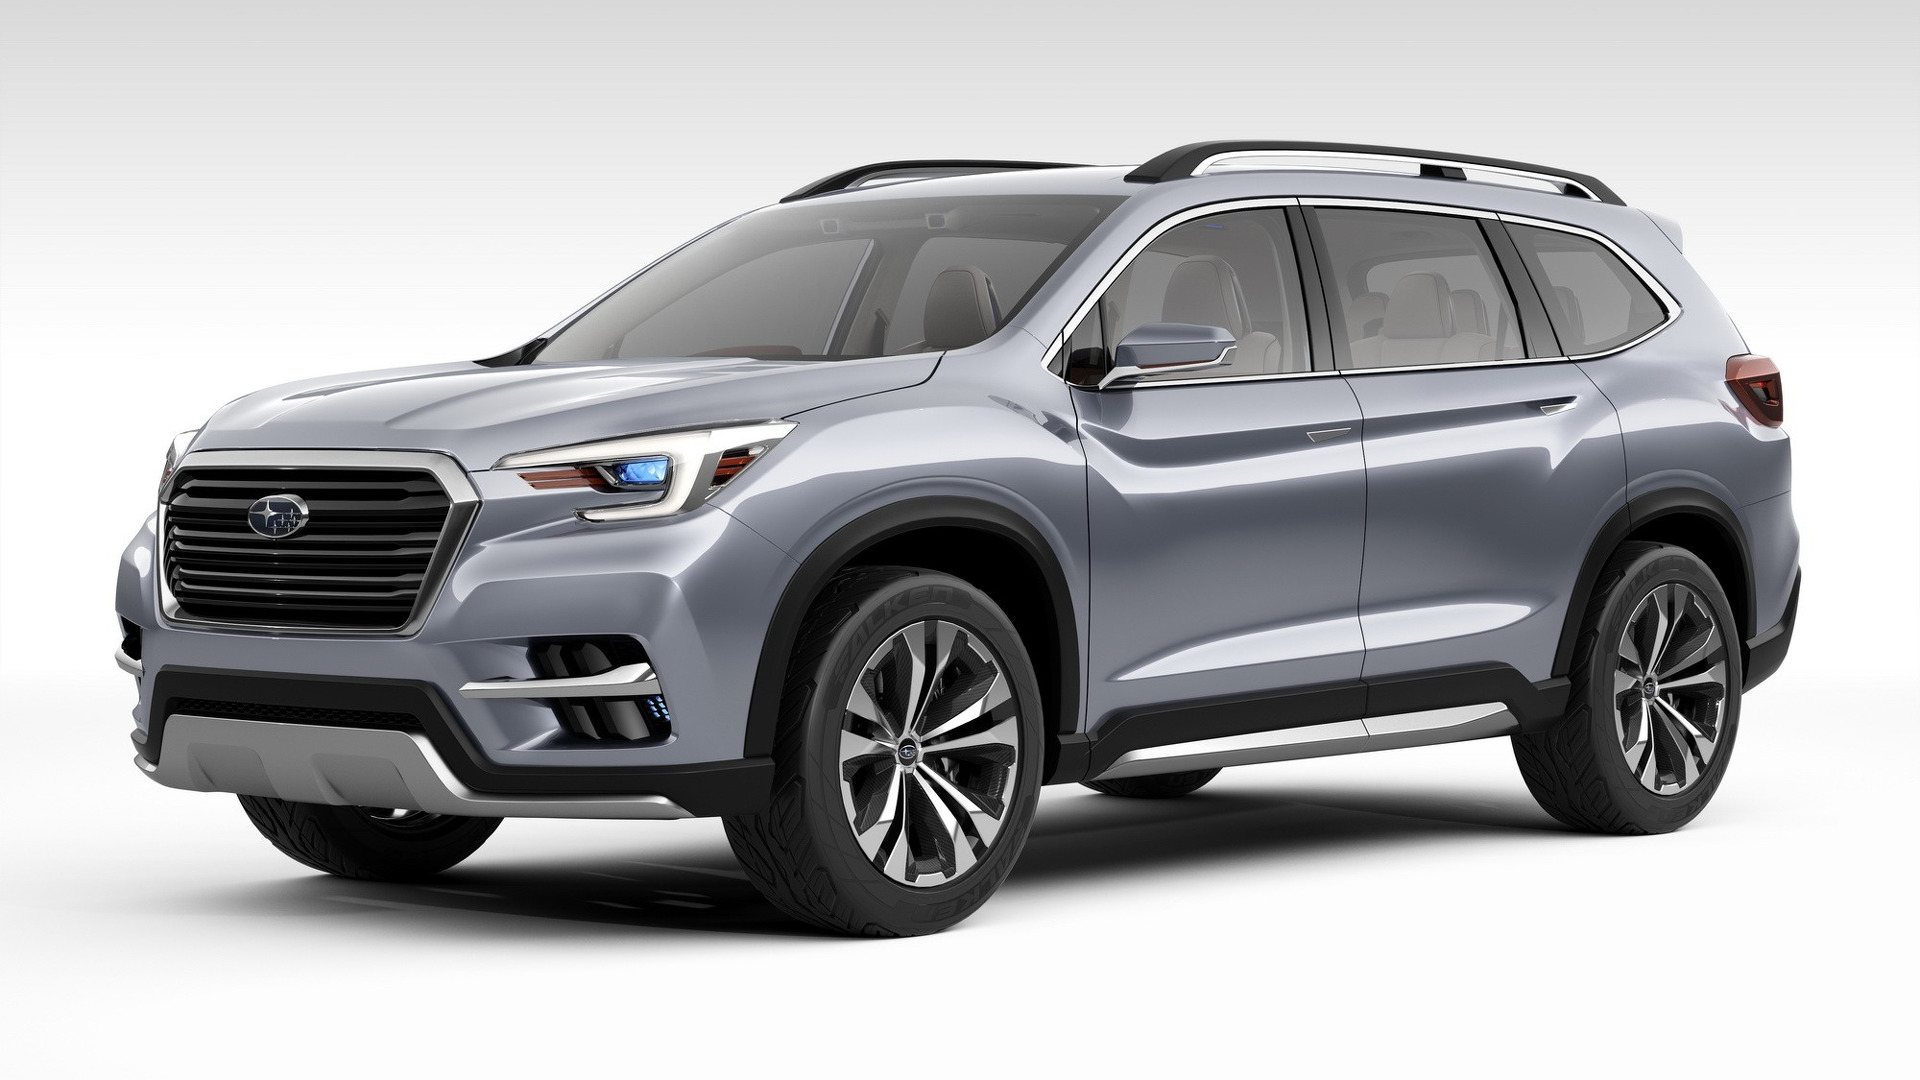 Model Subaru Ascent Shown More ProductionReady In NY